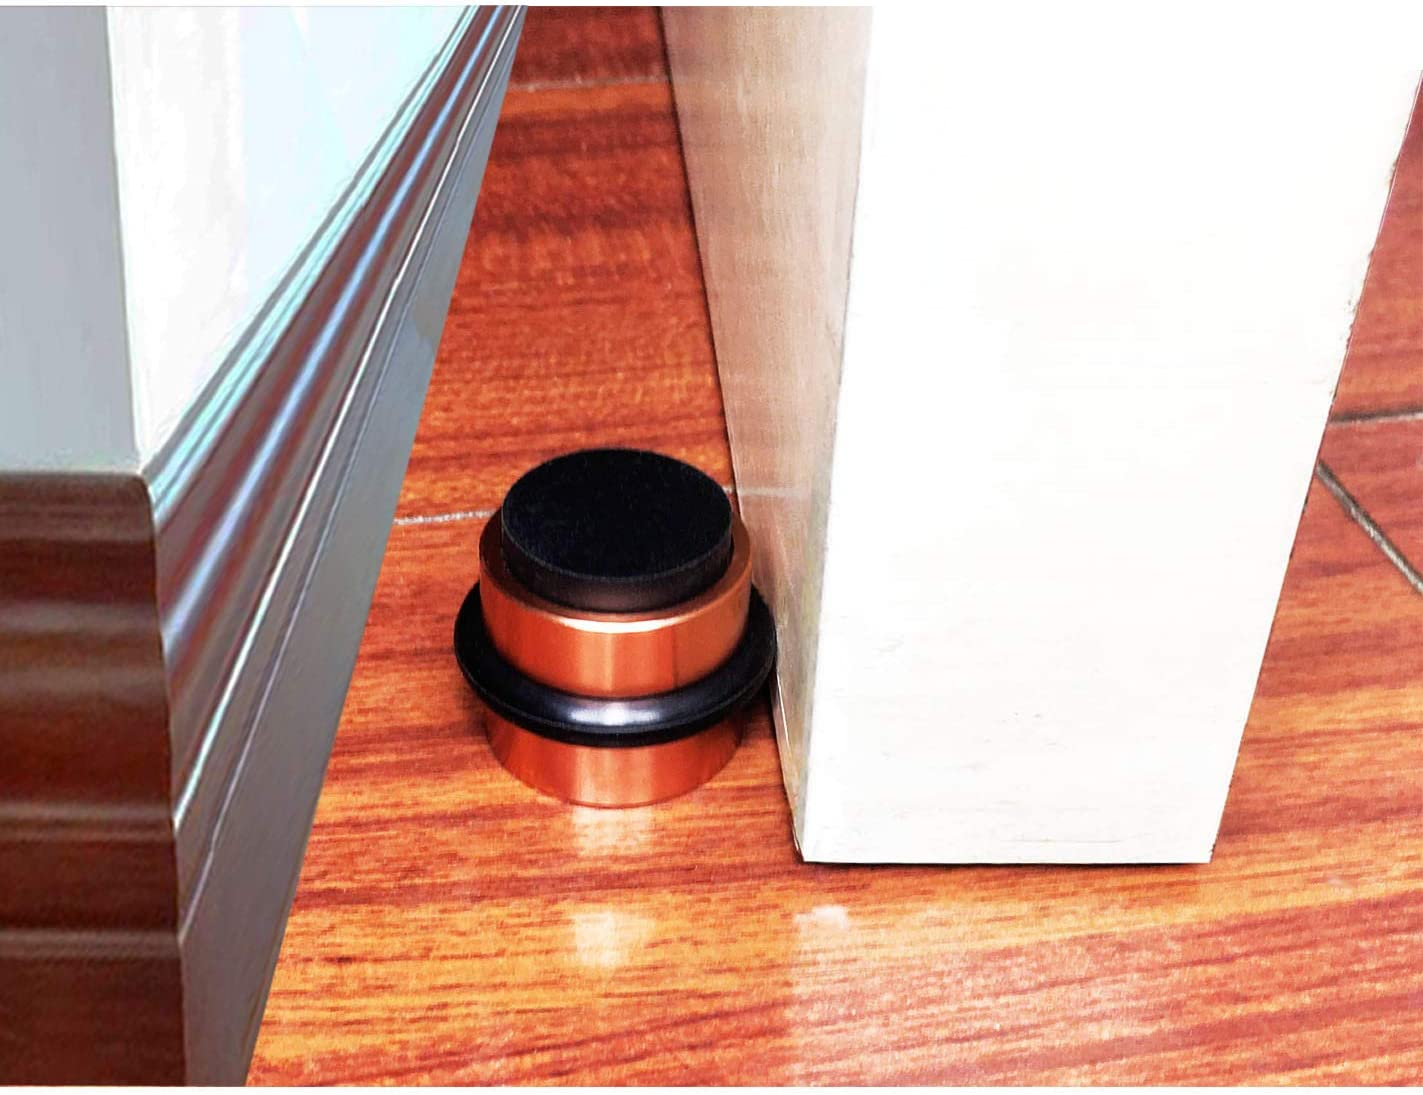 Rubber Bumper Premium Top Durability with Silica Gel Treads Aluminum Alloy Cylindrical Door Stopper Stylish Decorative Door Stop for Draft Stopping and Floor /& Wall Safety-Copper-C with Screws